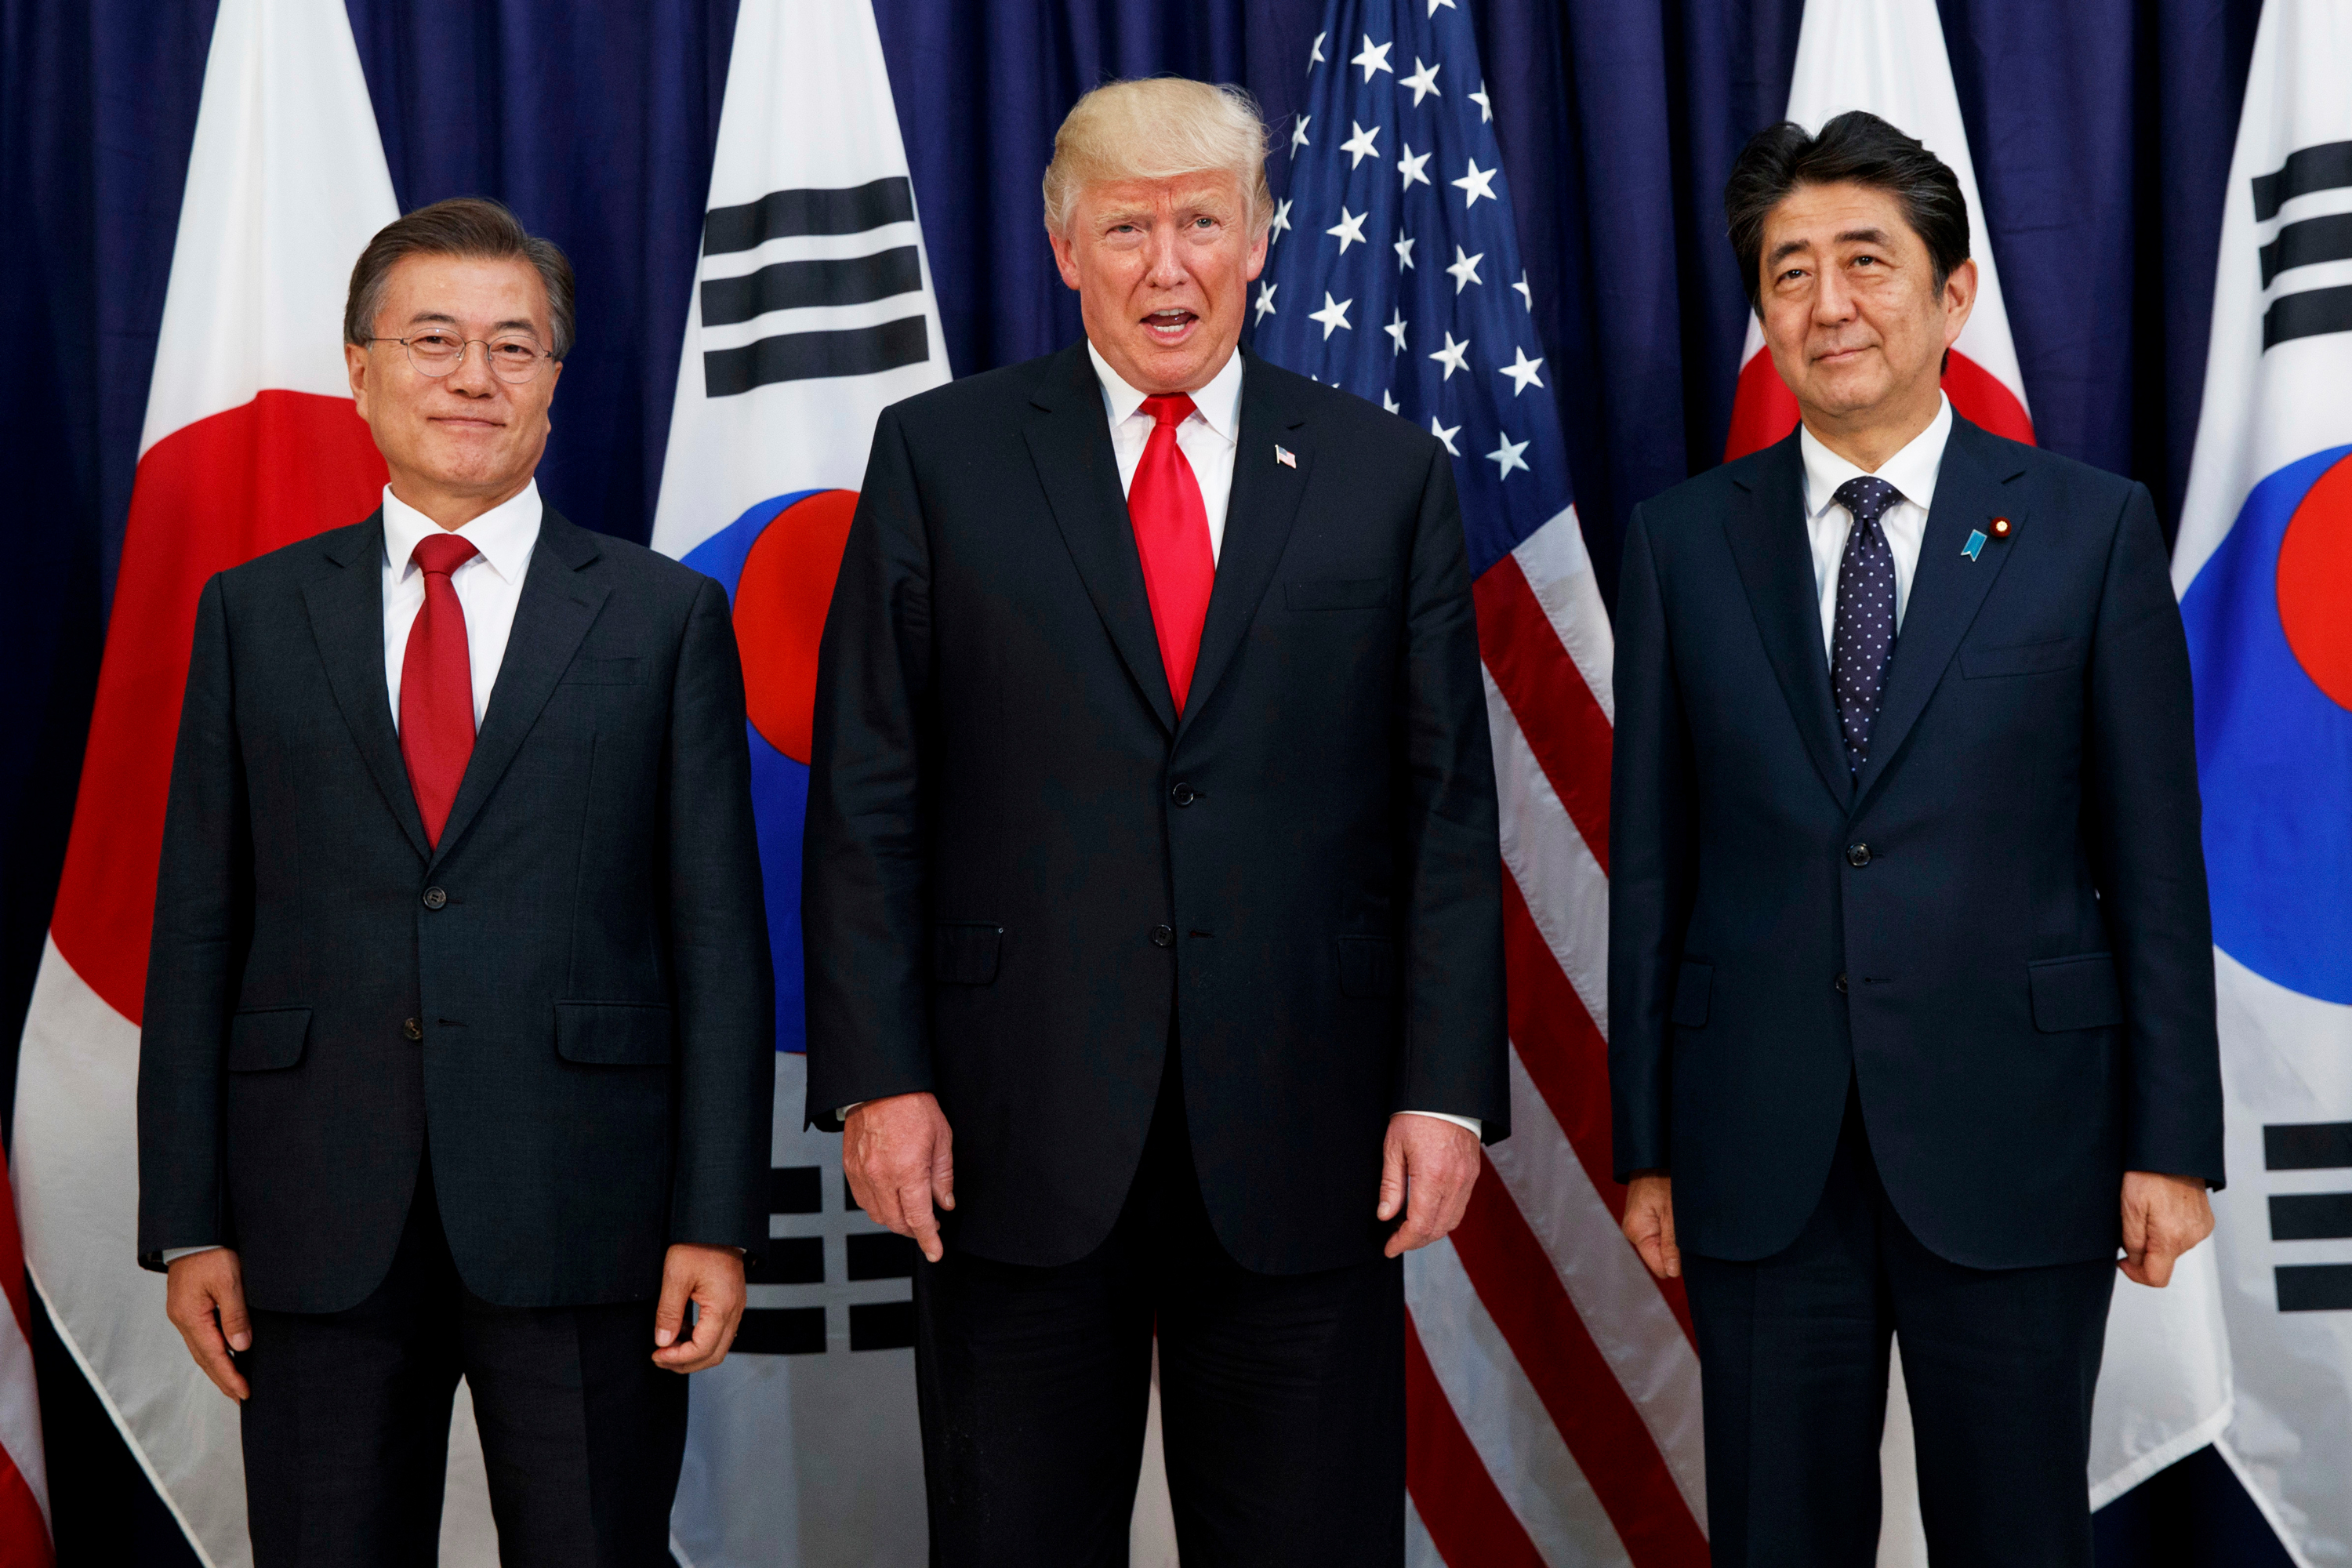 In this July 6, 2017, file photo, U.S. President Donald Trump, center, meets with Japanese Prime Minister Shinzo Abe, right, and South Korean President Moon Jae-in before the Northeast Asia Security dinner at the U.S. Consulate General Hamburg in Germany. In August 2019, Trump angered some Asian American voters after the New York Post reported that he mocked the accents of Moon and Abe at a fundraiser in the Hamptons.